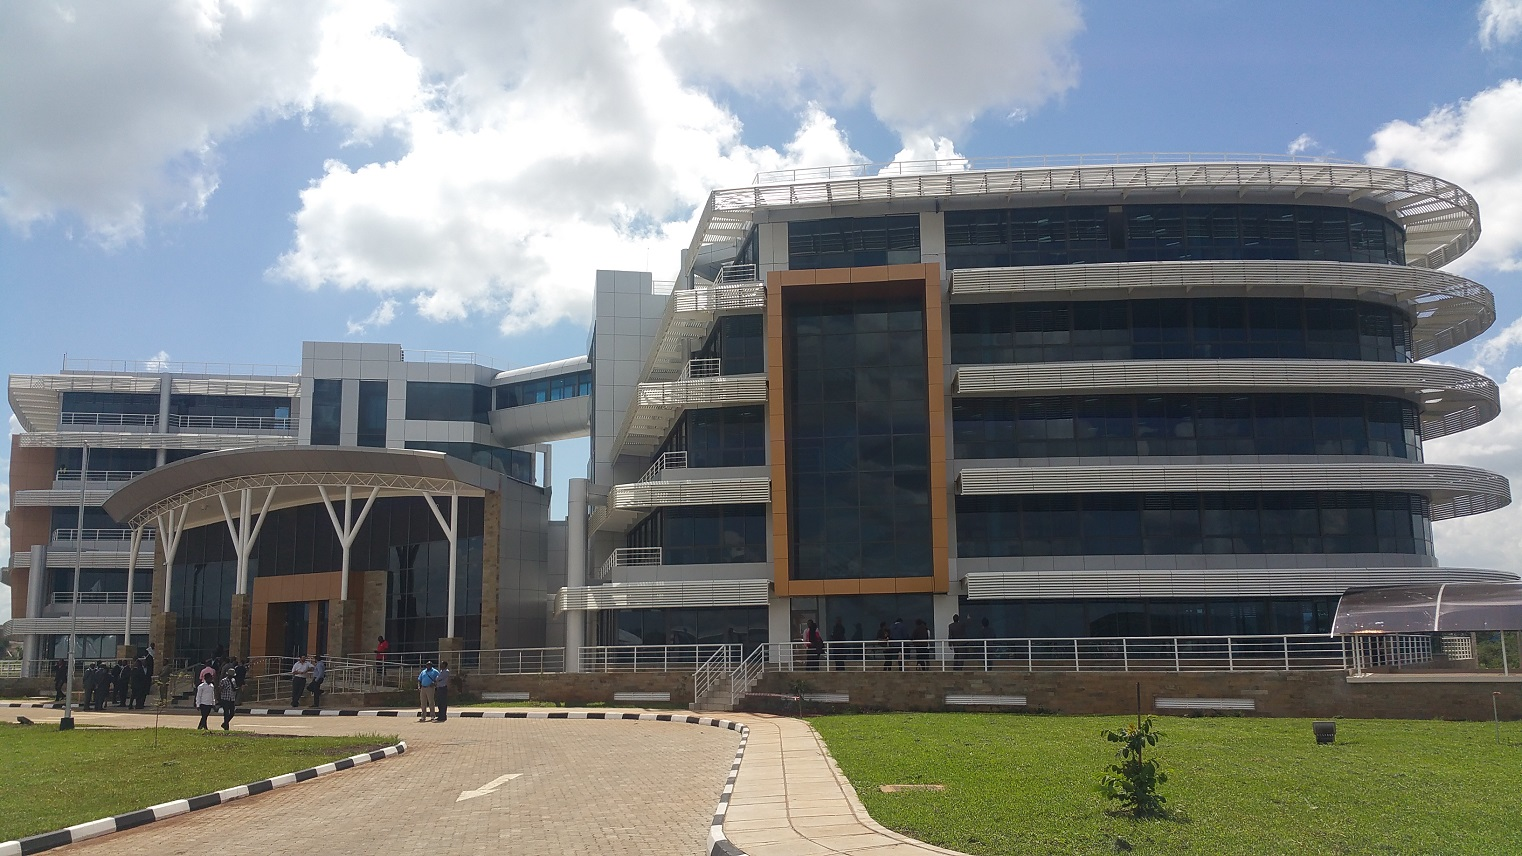 Kenya Civil Aviation Authority HQ